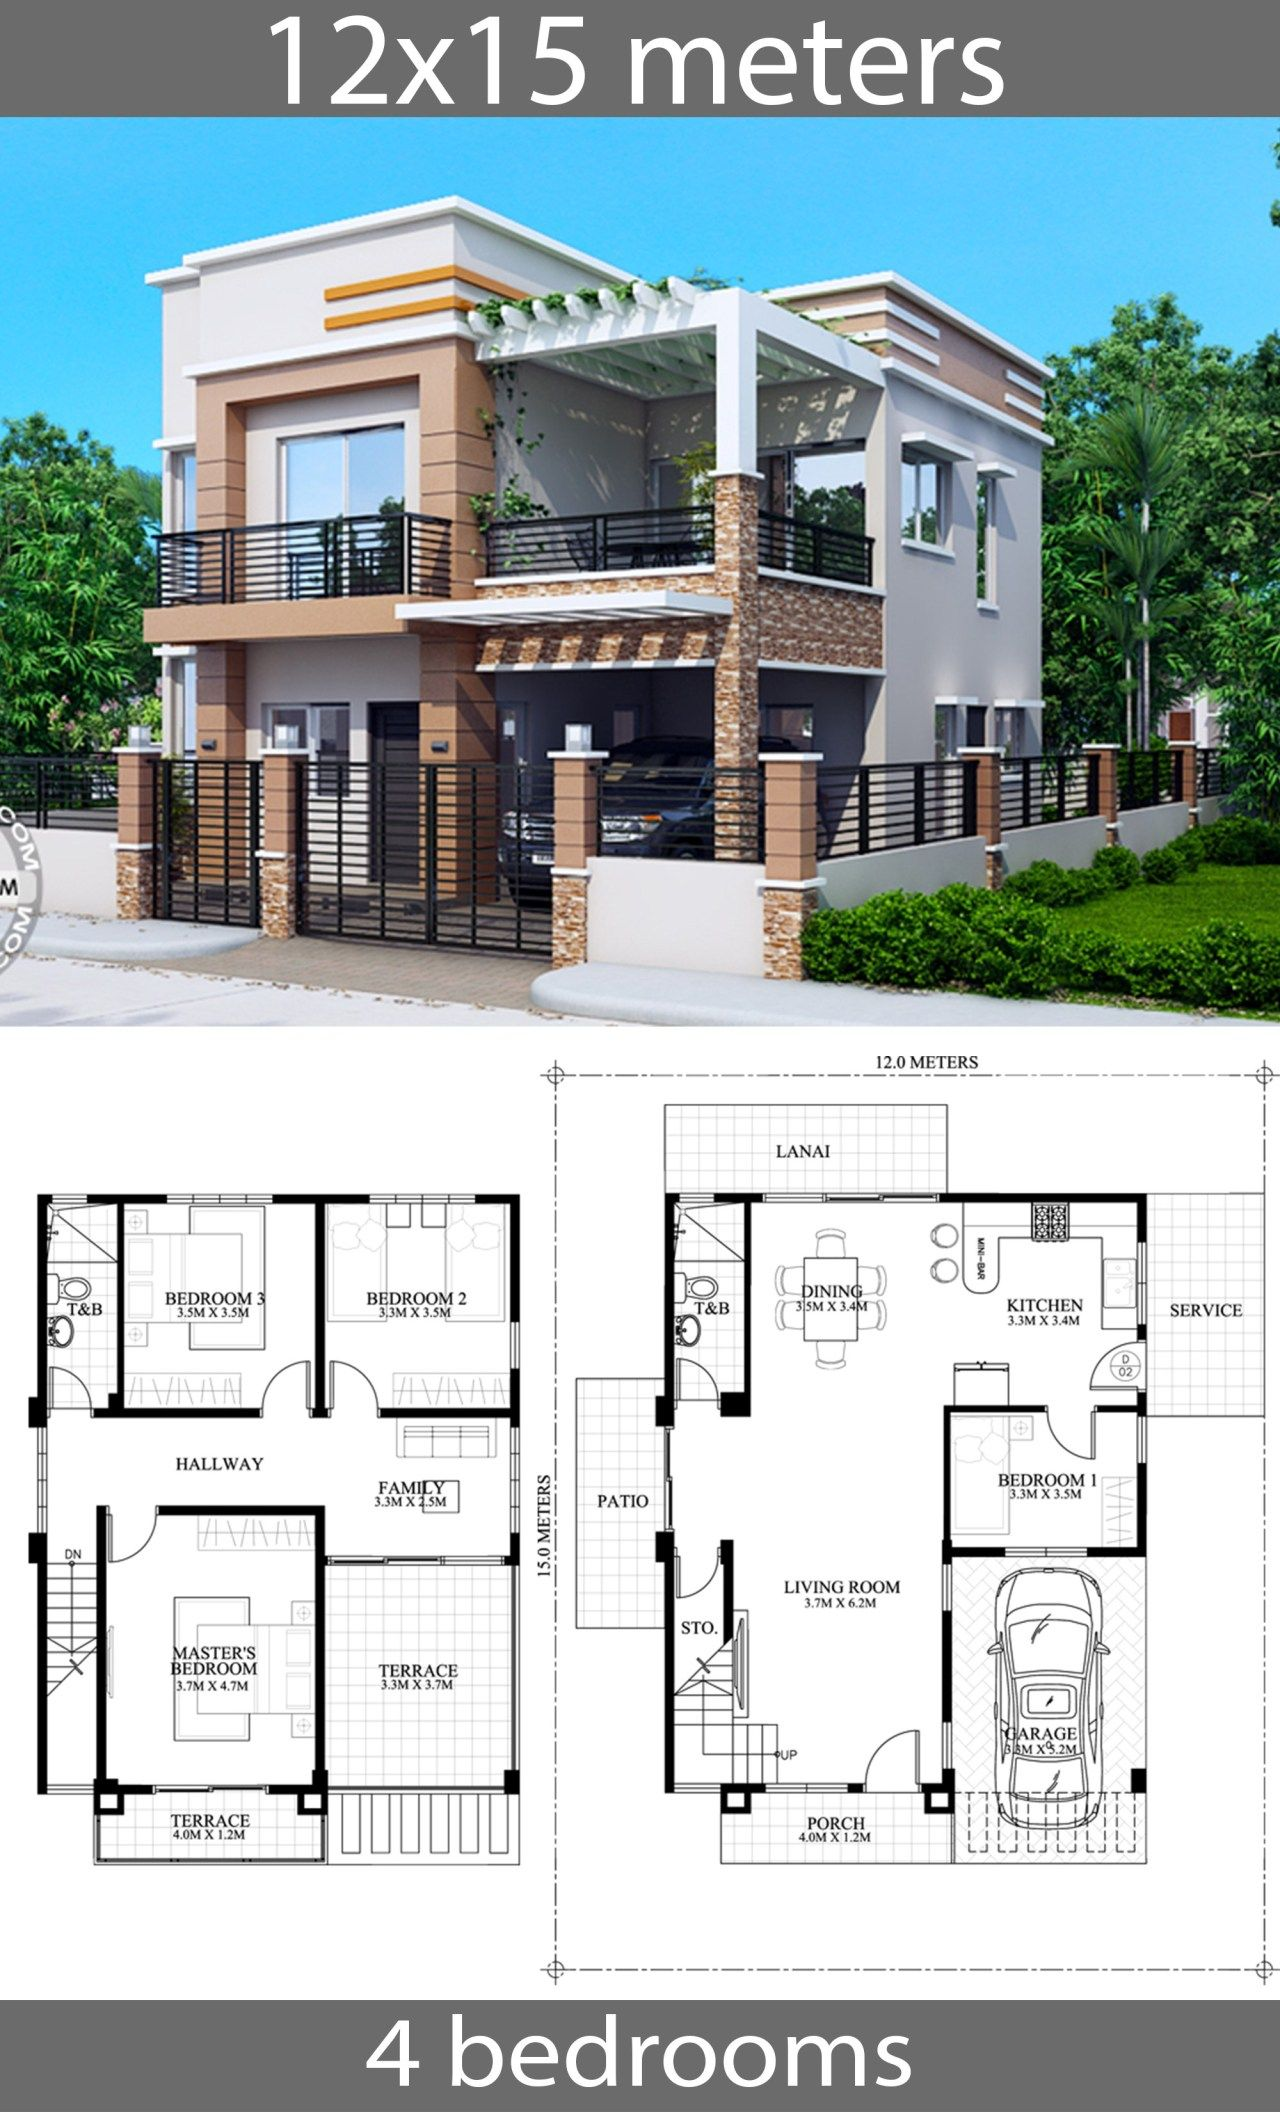 House Plans 12x15m With 4 Bedrooms Home Ideas House Construction Plan Family House Plans Budget House Plans